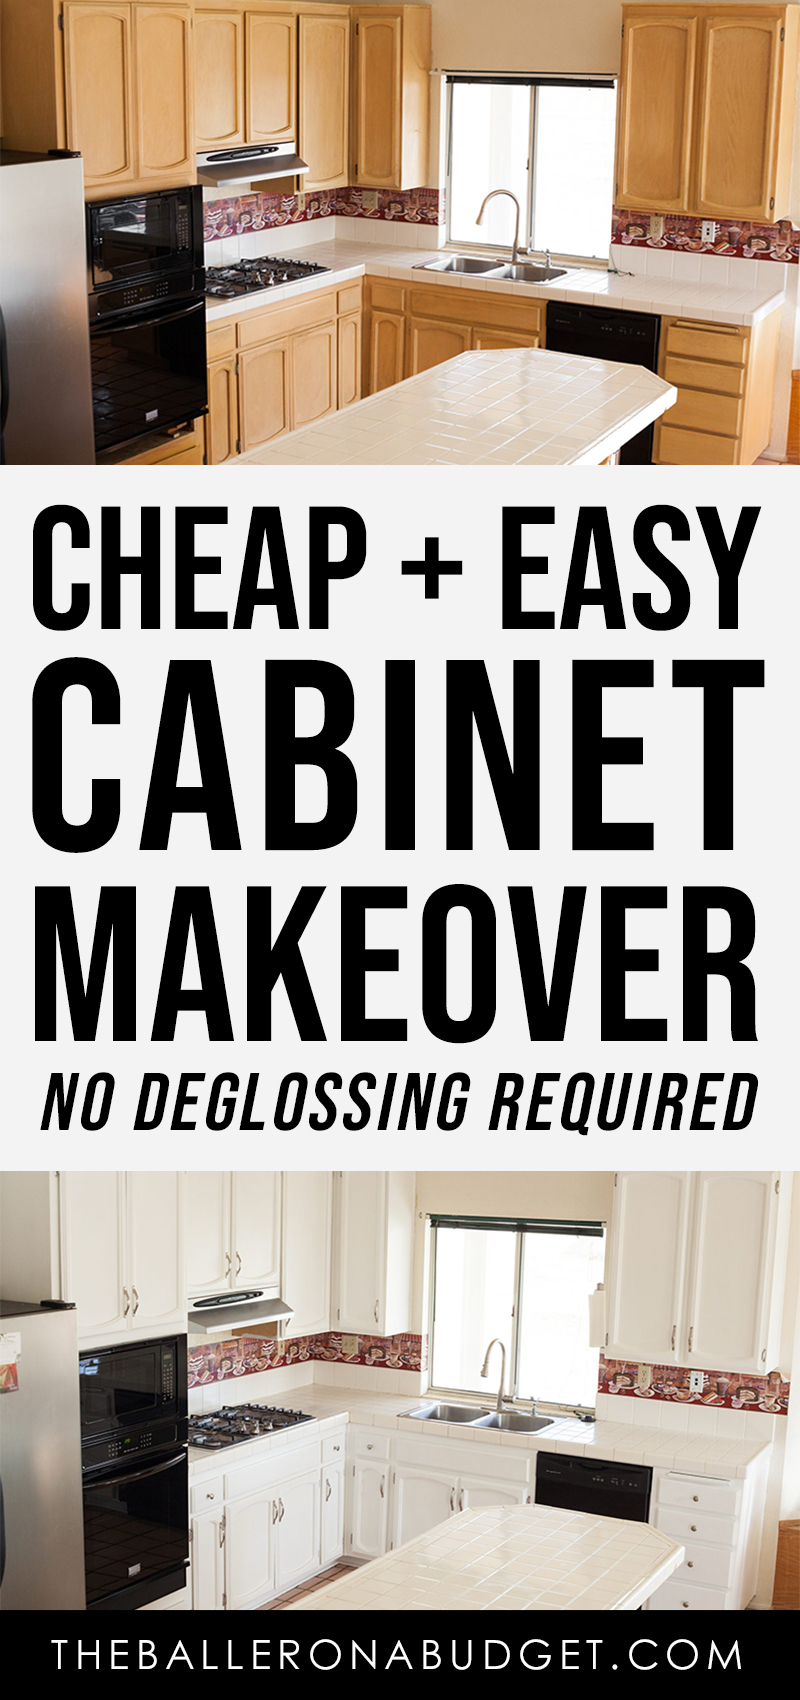 Before and after images of easy and affordable cabinet makeover using milk paint with no deglosser